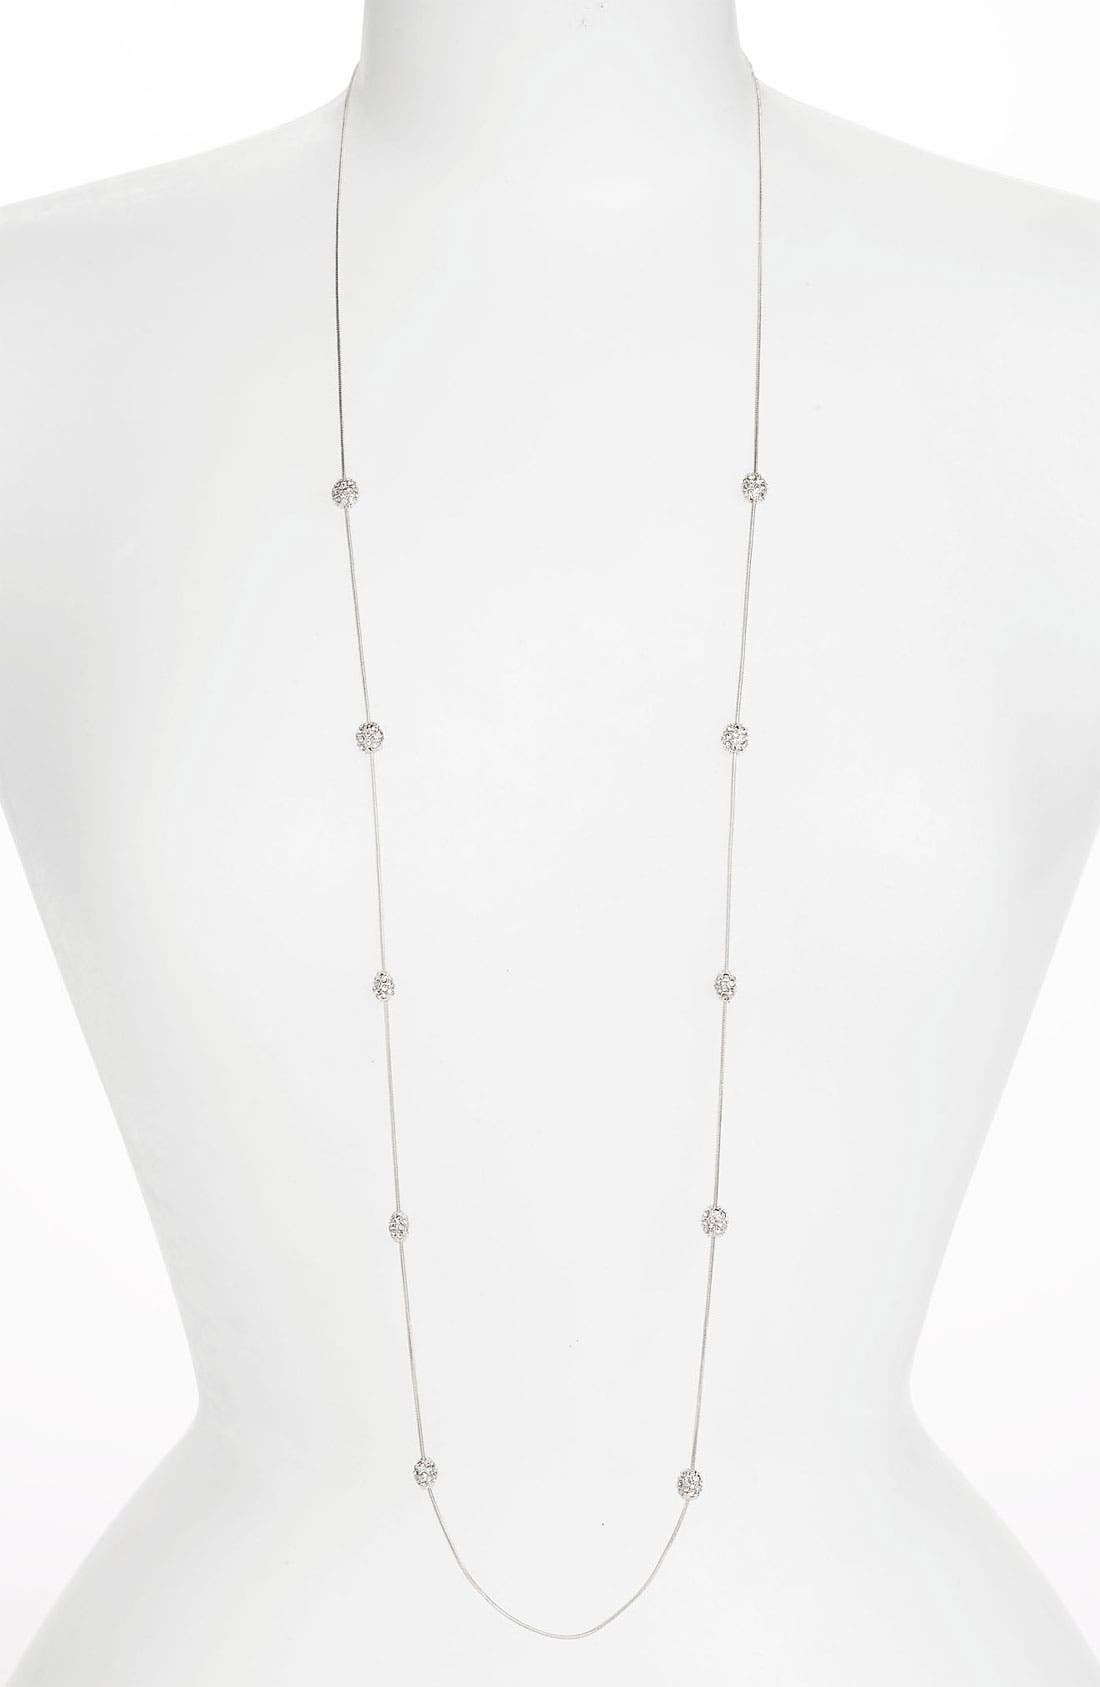 Main Image - Anne Klein 'Fireball' Long Illusion Necklace